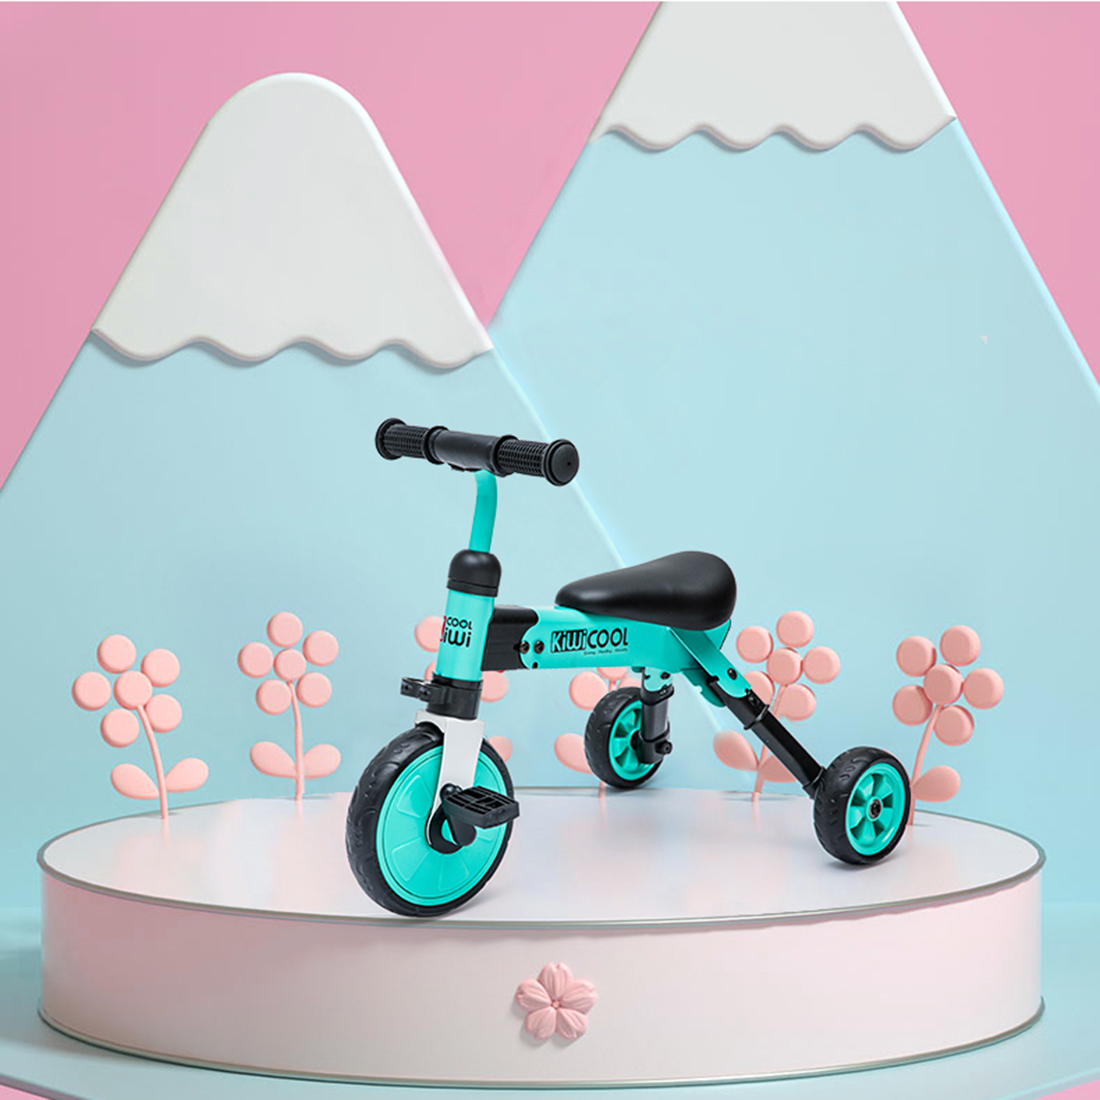 2-in-1 Carbon Steel Kids Tricycles Folding Lightweight Trike Baby Outdoor Riding Bicycle For 1-6 Years Old 2019 Child Gift